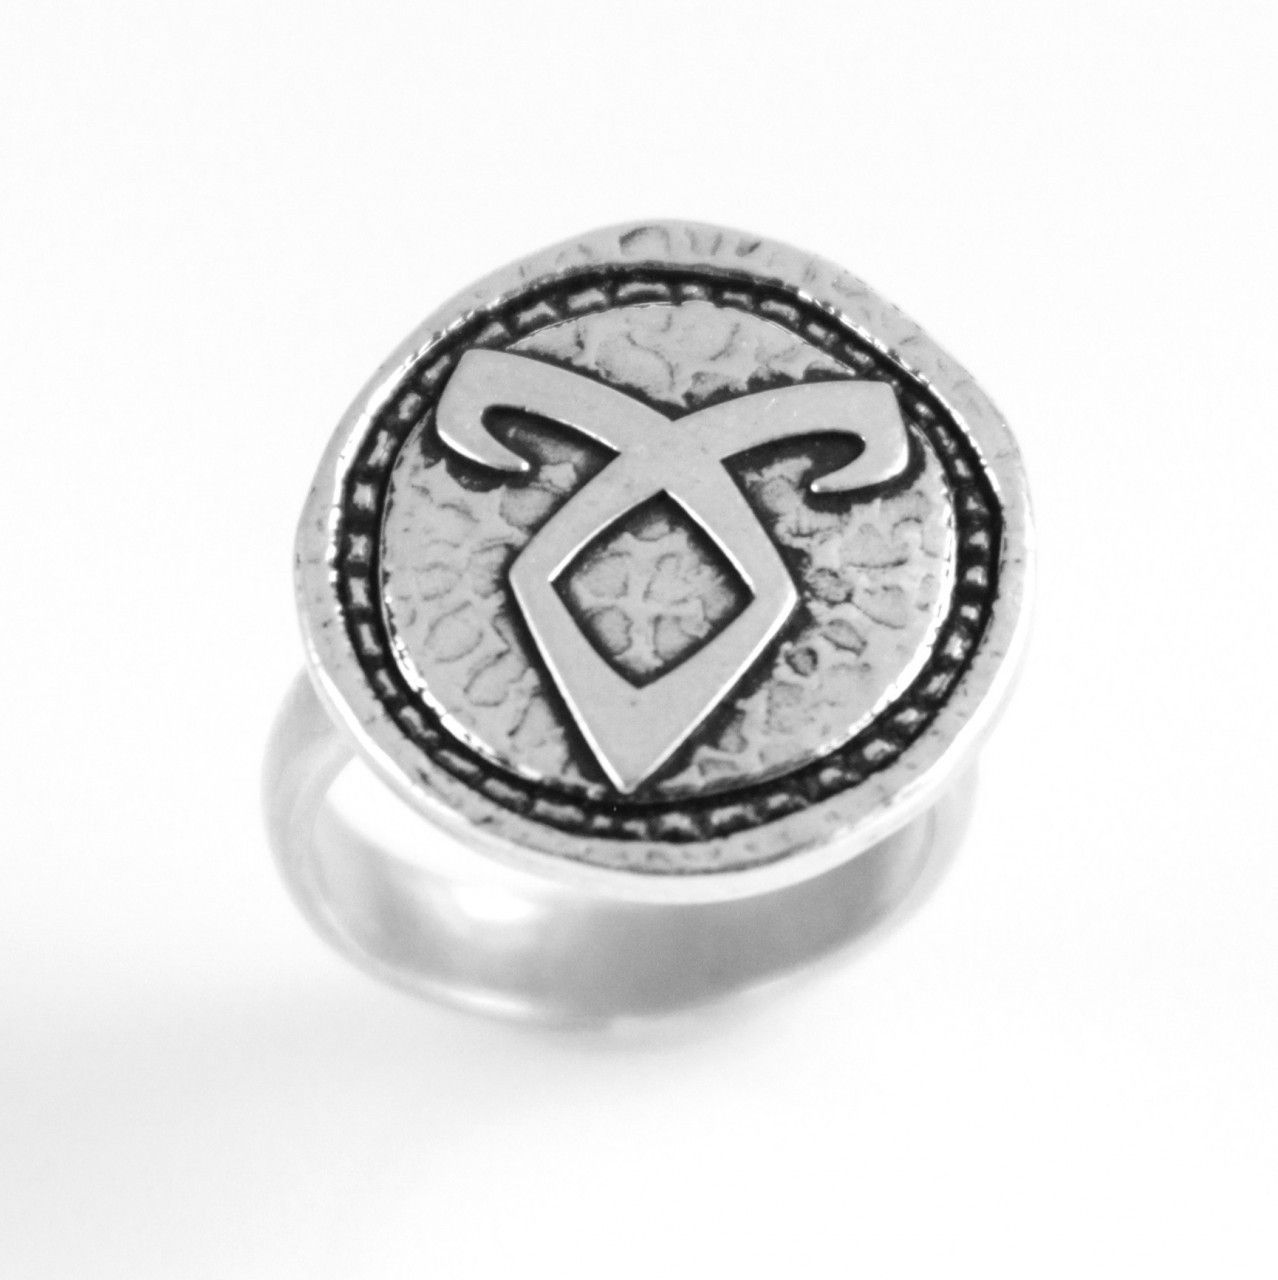 Angelic Rune Ring - The Mortal Instruments Jewelry